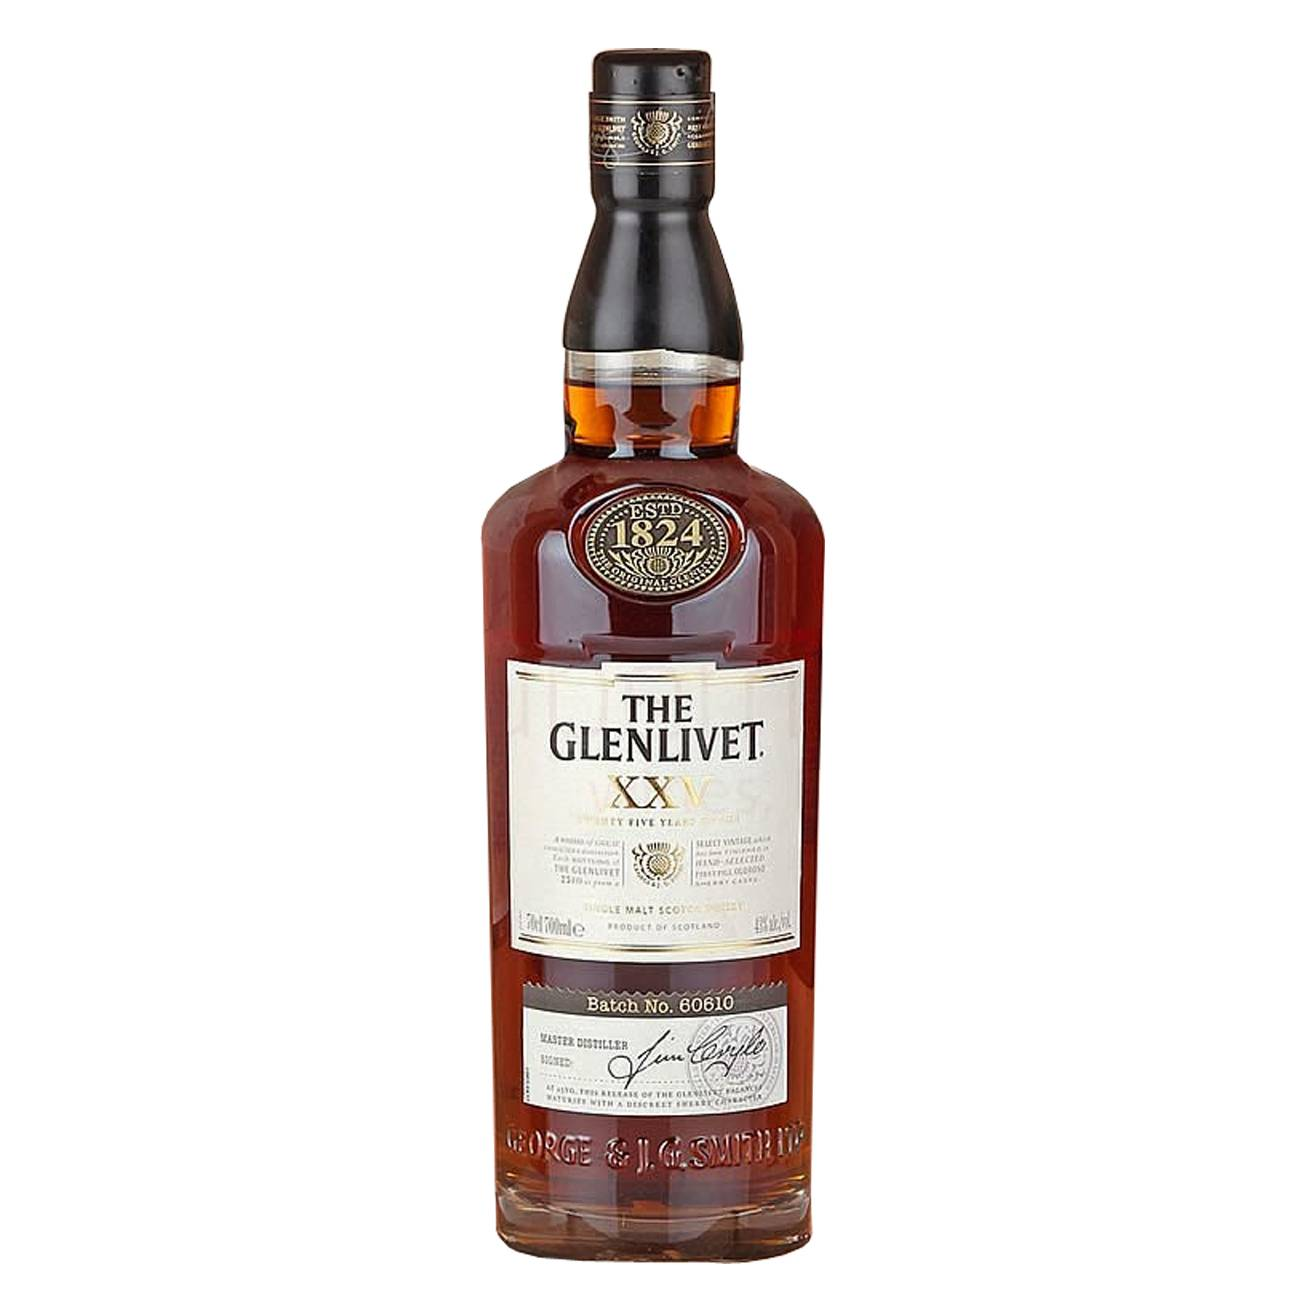 Whisky scotian, XXV 700ml, The Glenlivet